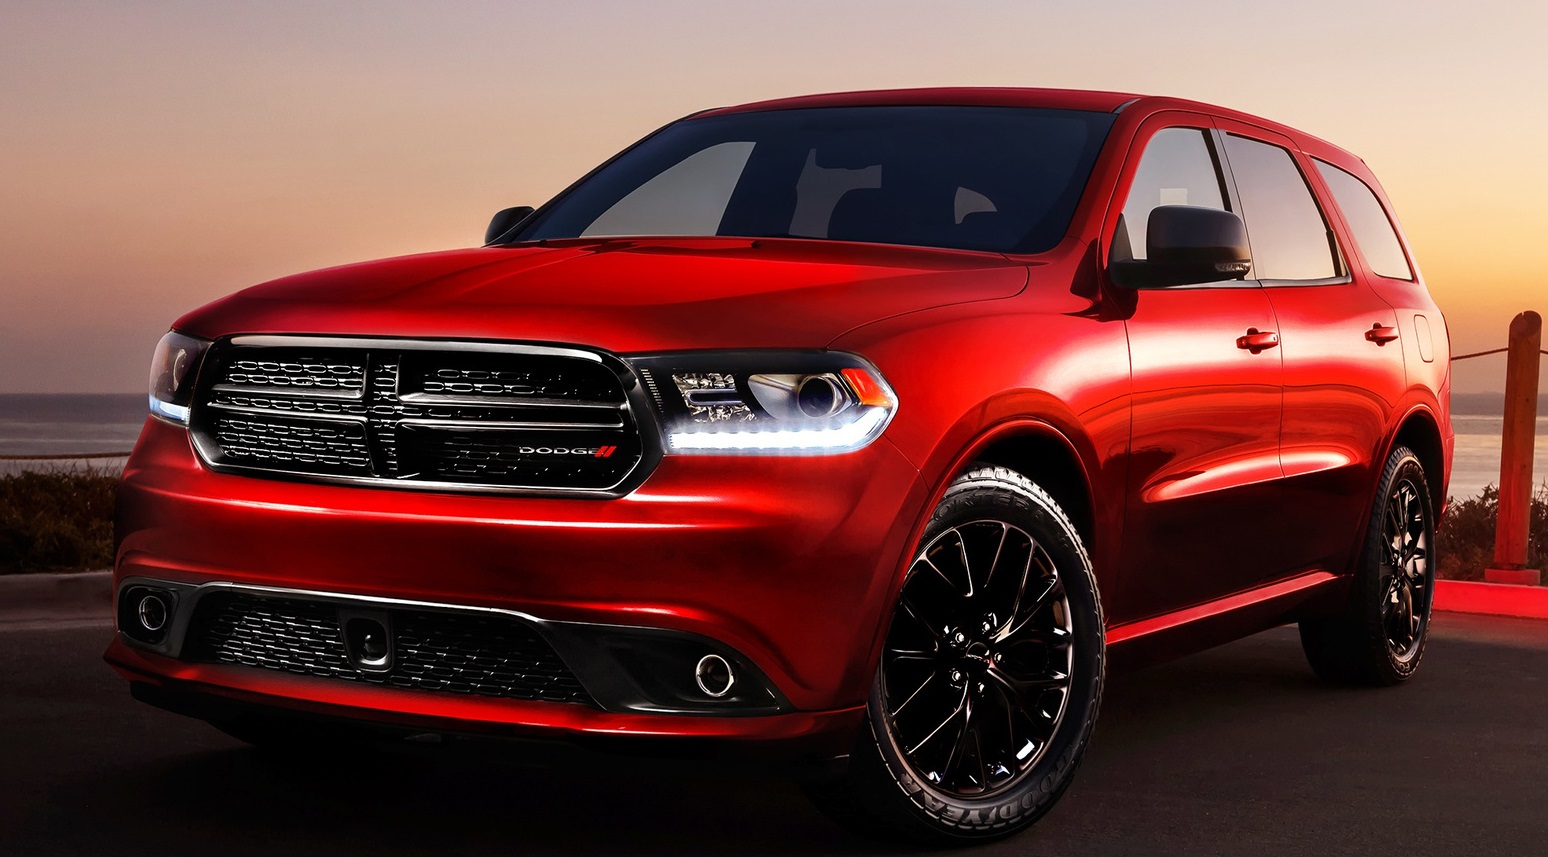 2017 Dodge Durango R T Review No Srt Required For This V8 Ed Suv Gearopen